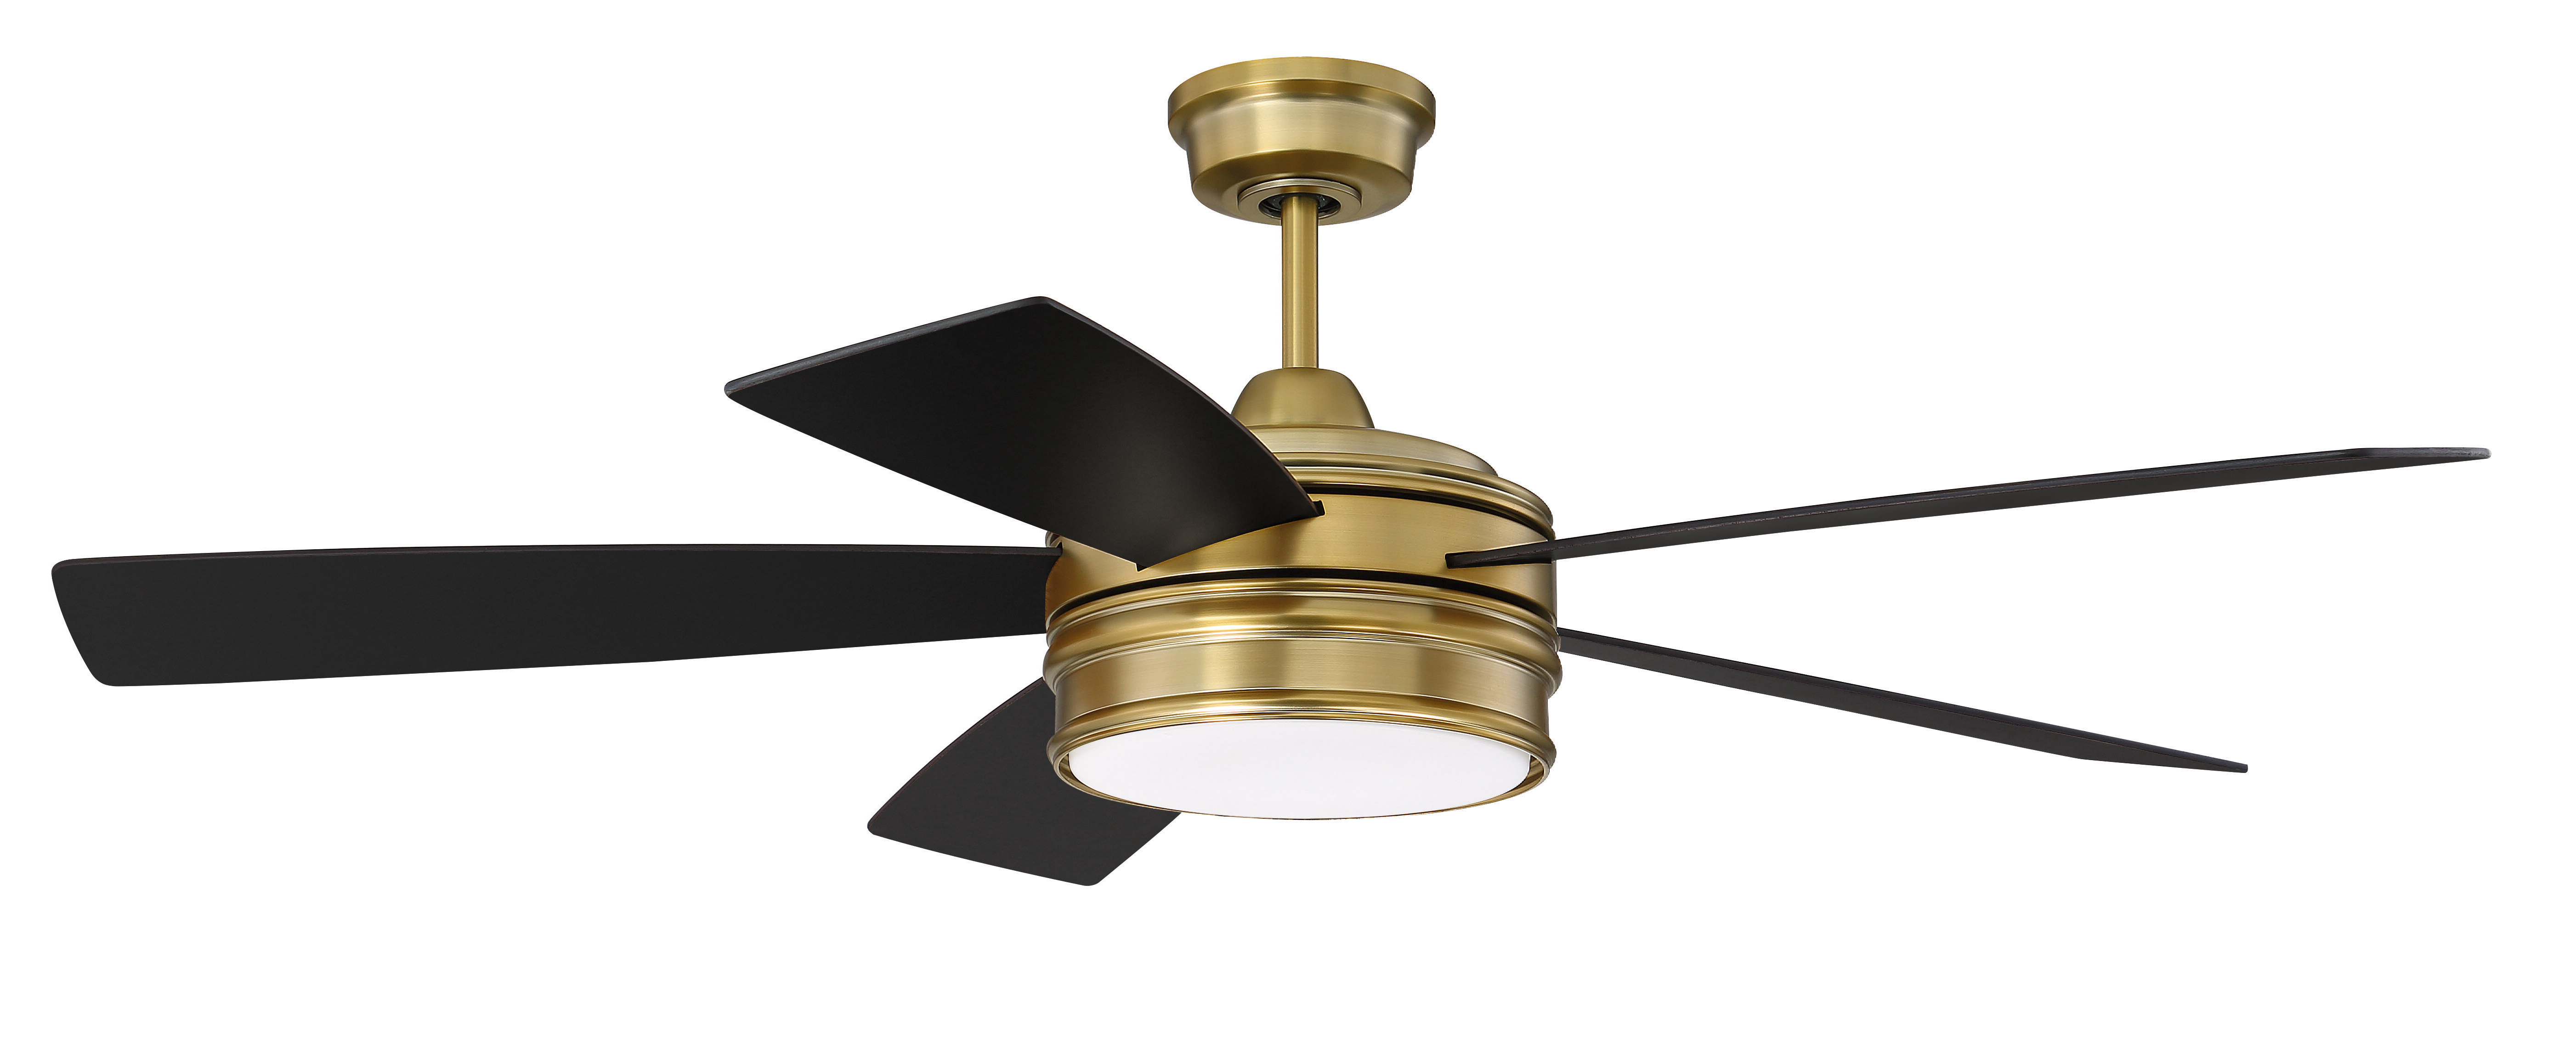 "2019 Windemere 5 Blade Ceiling Fans With Remote Throughout 52"" Winchcombe 5 Blade Led Ceiling Fan With Remote Light Kit (View 12 of 20)"